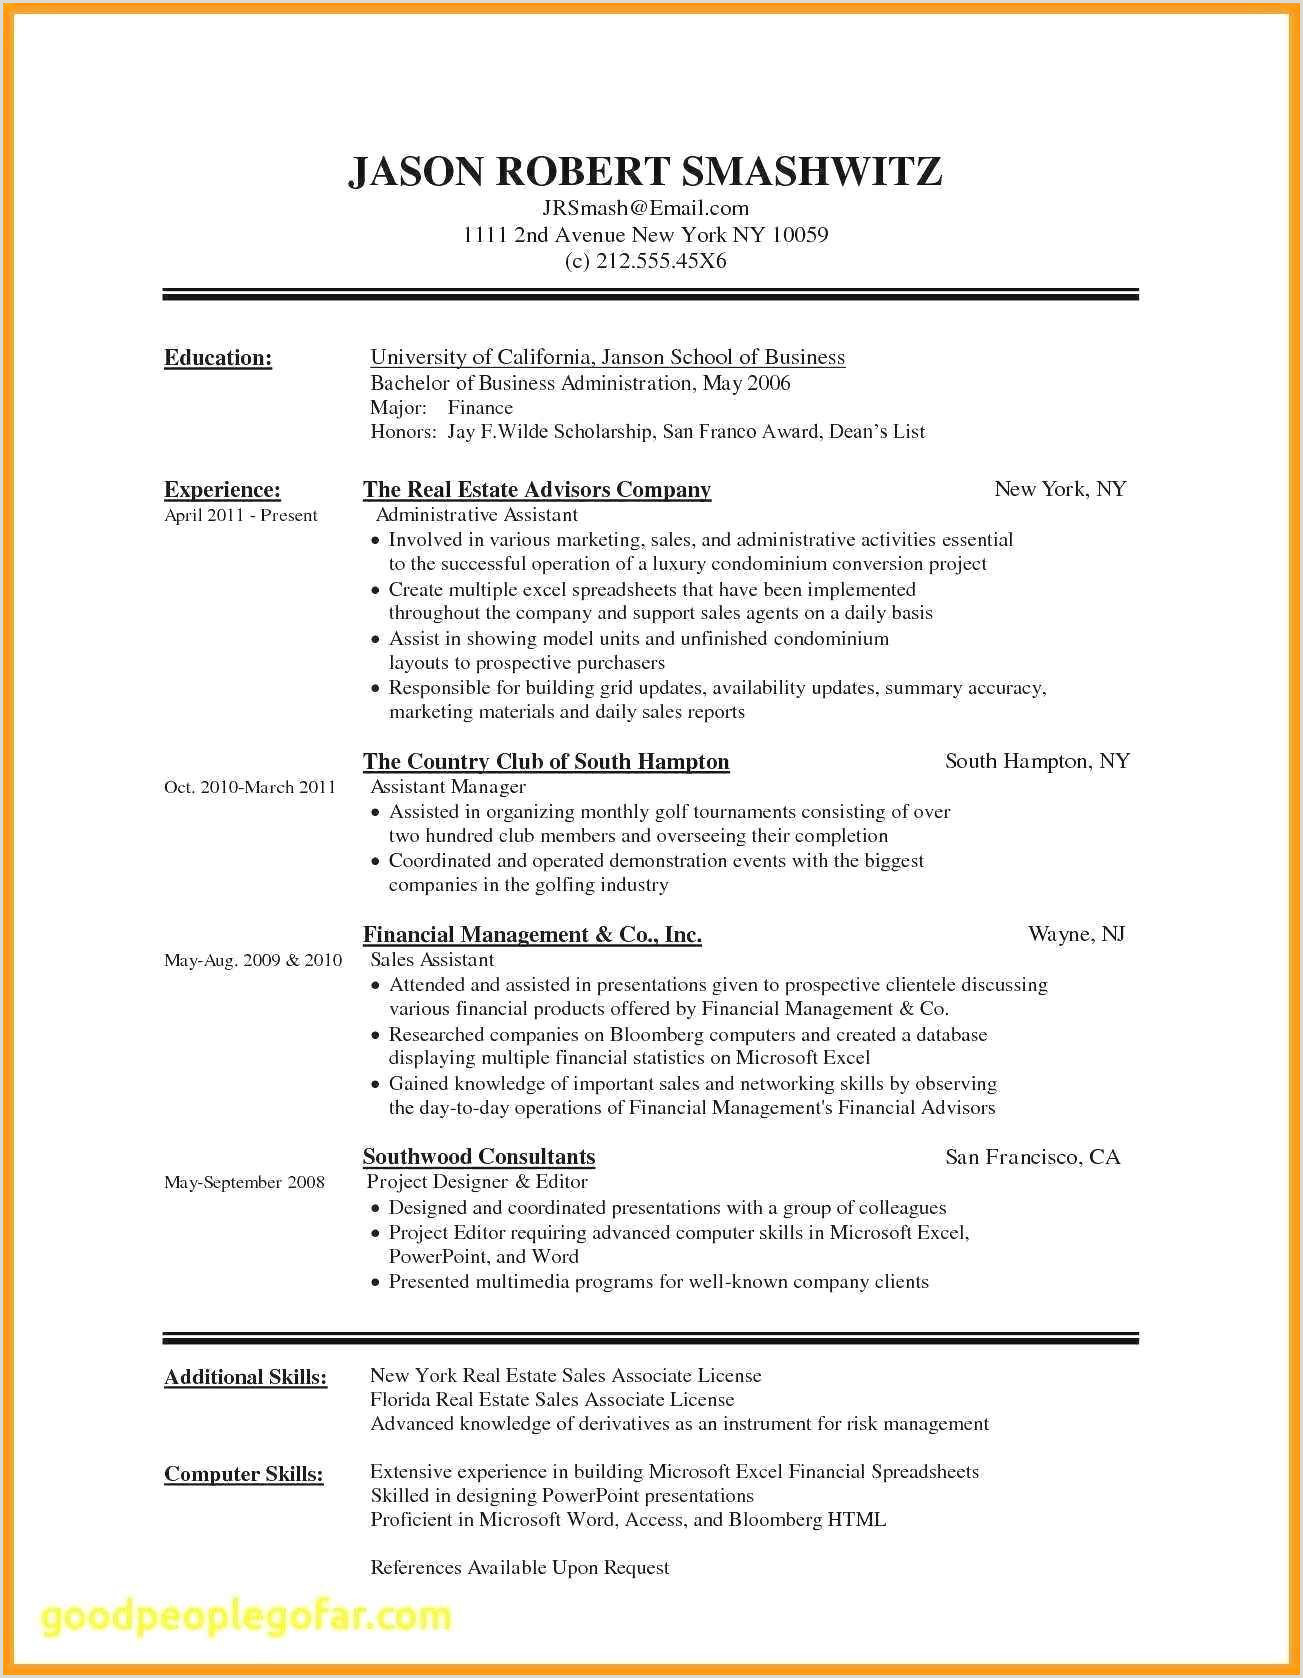 Resume format for Ca Job Ms Powerpoint Templates Free Download 2010 Outstanding Free